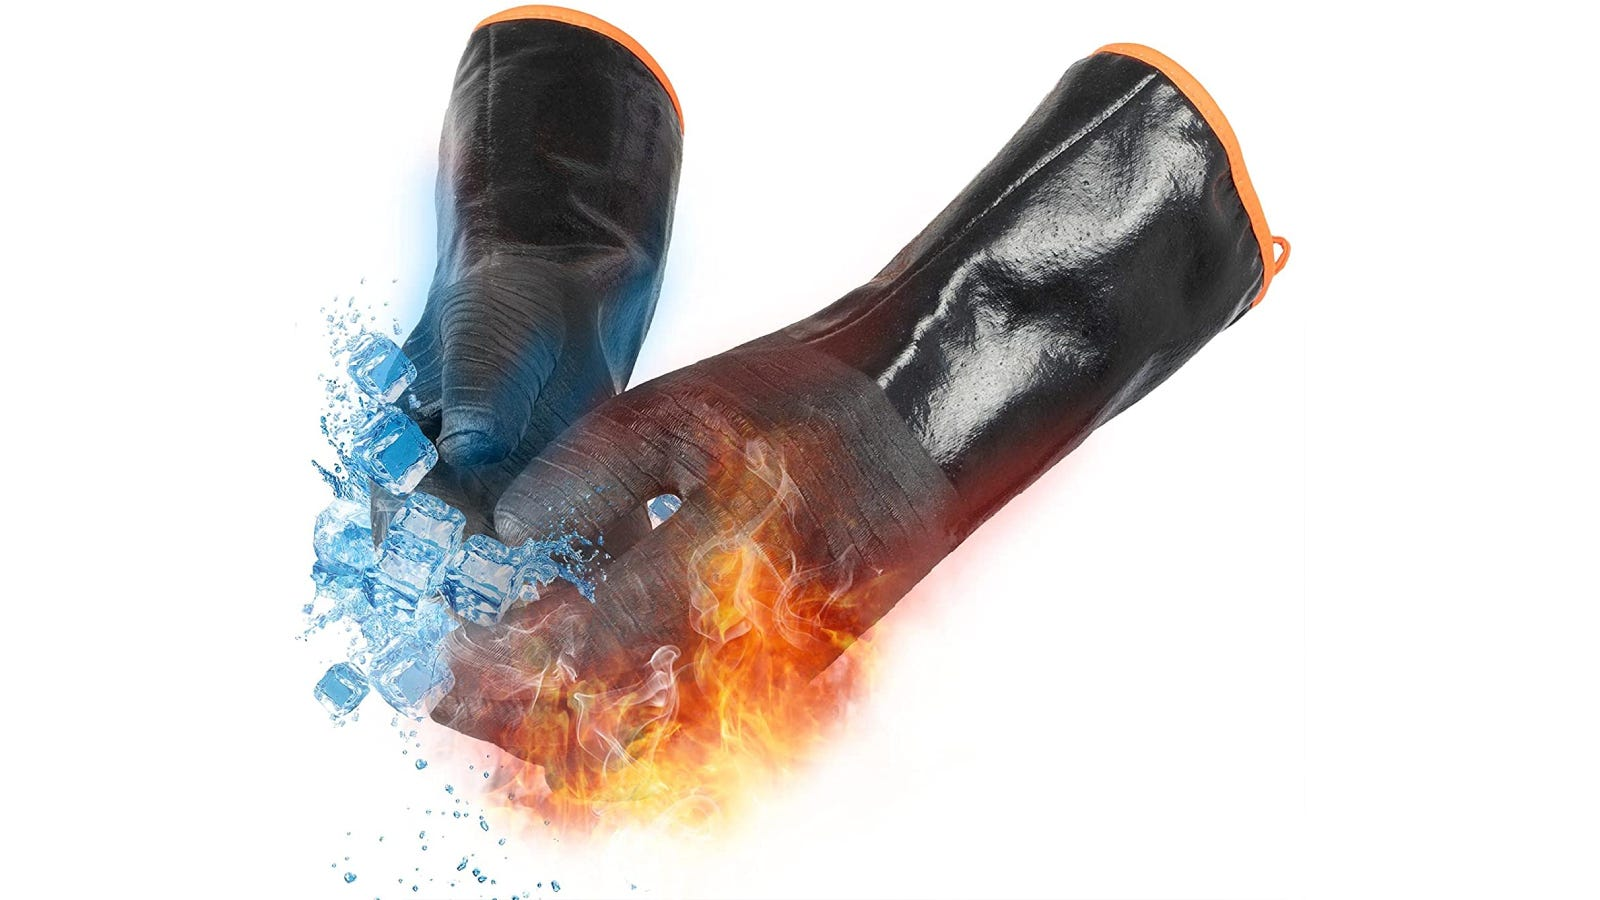 black long gloves shown with ice cubes and flames to show heat and cold resistance